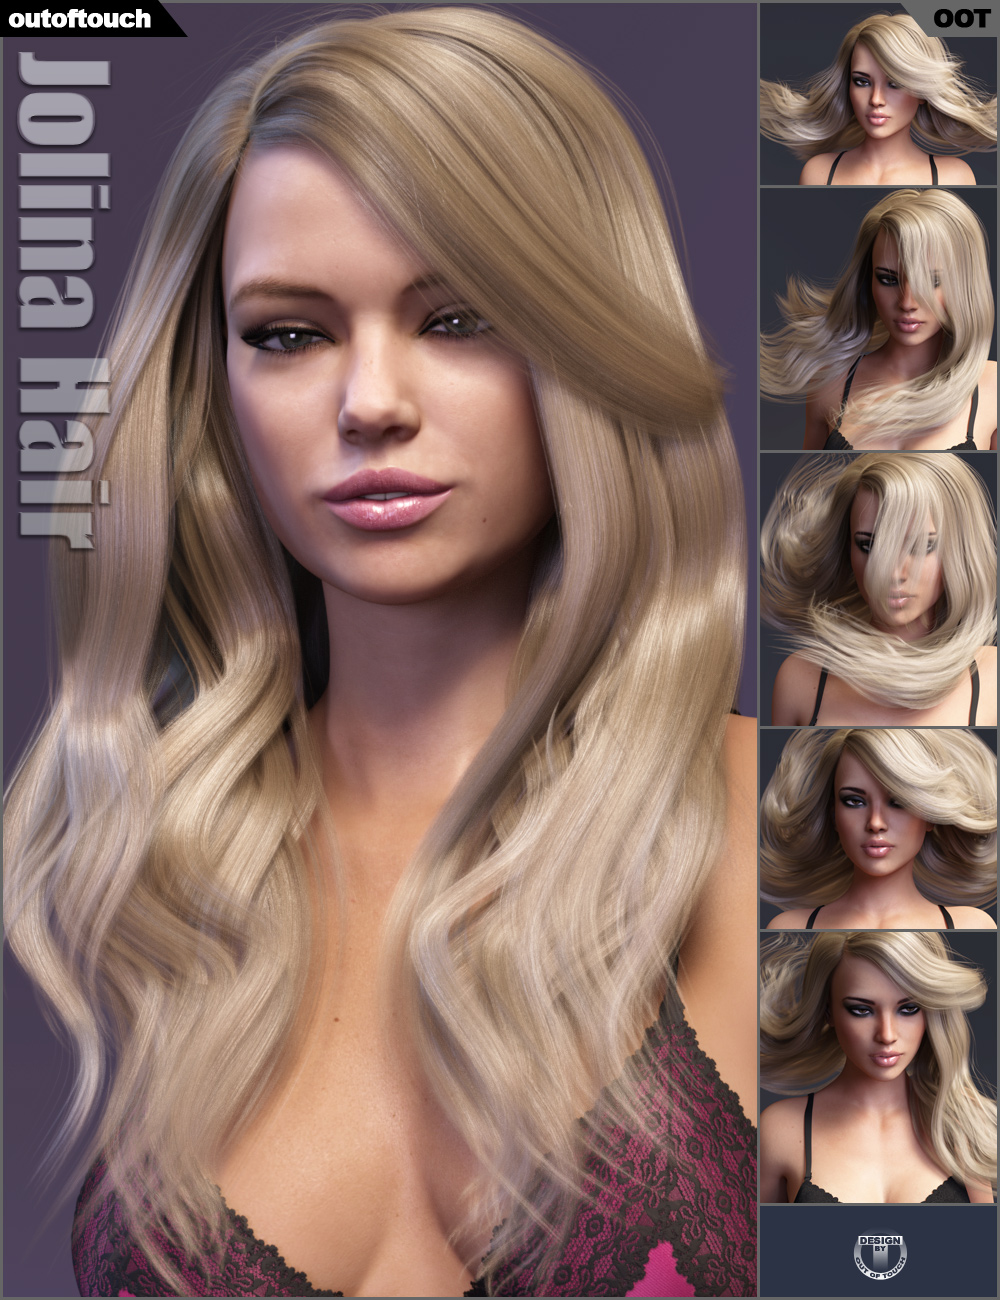 Jolina Hair by: outoftouch, 3D Models by Daz 3D